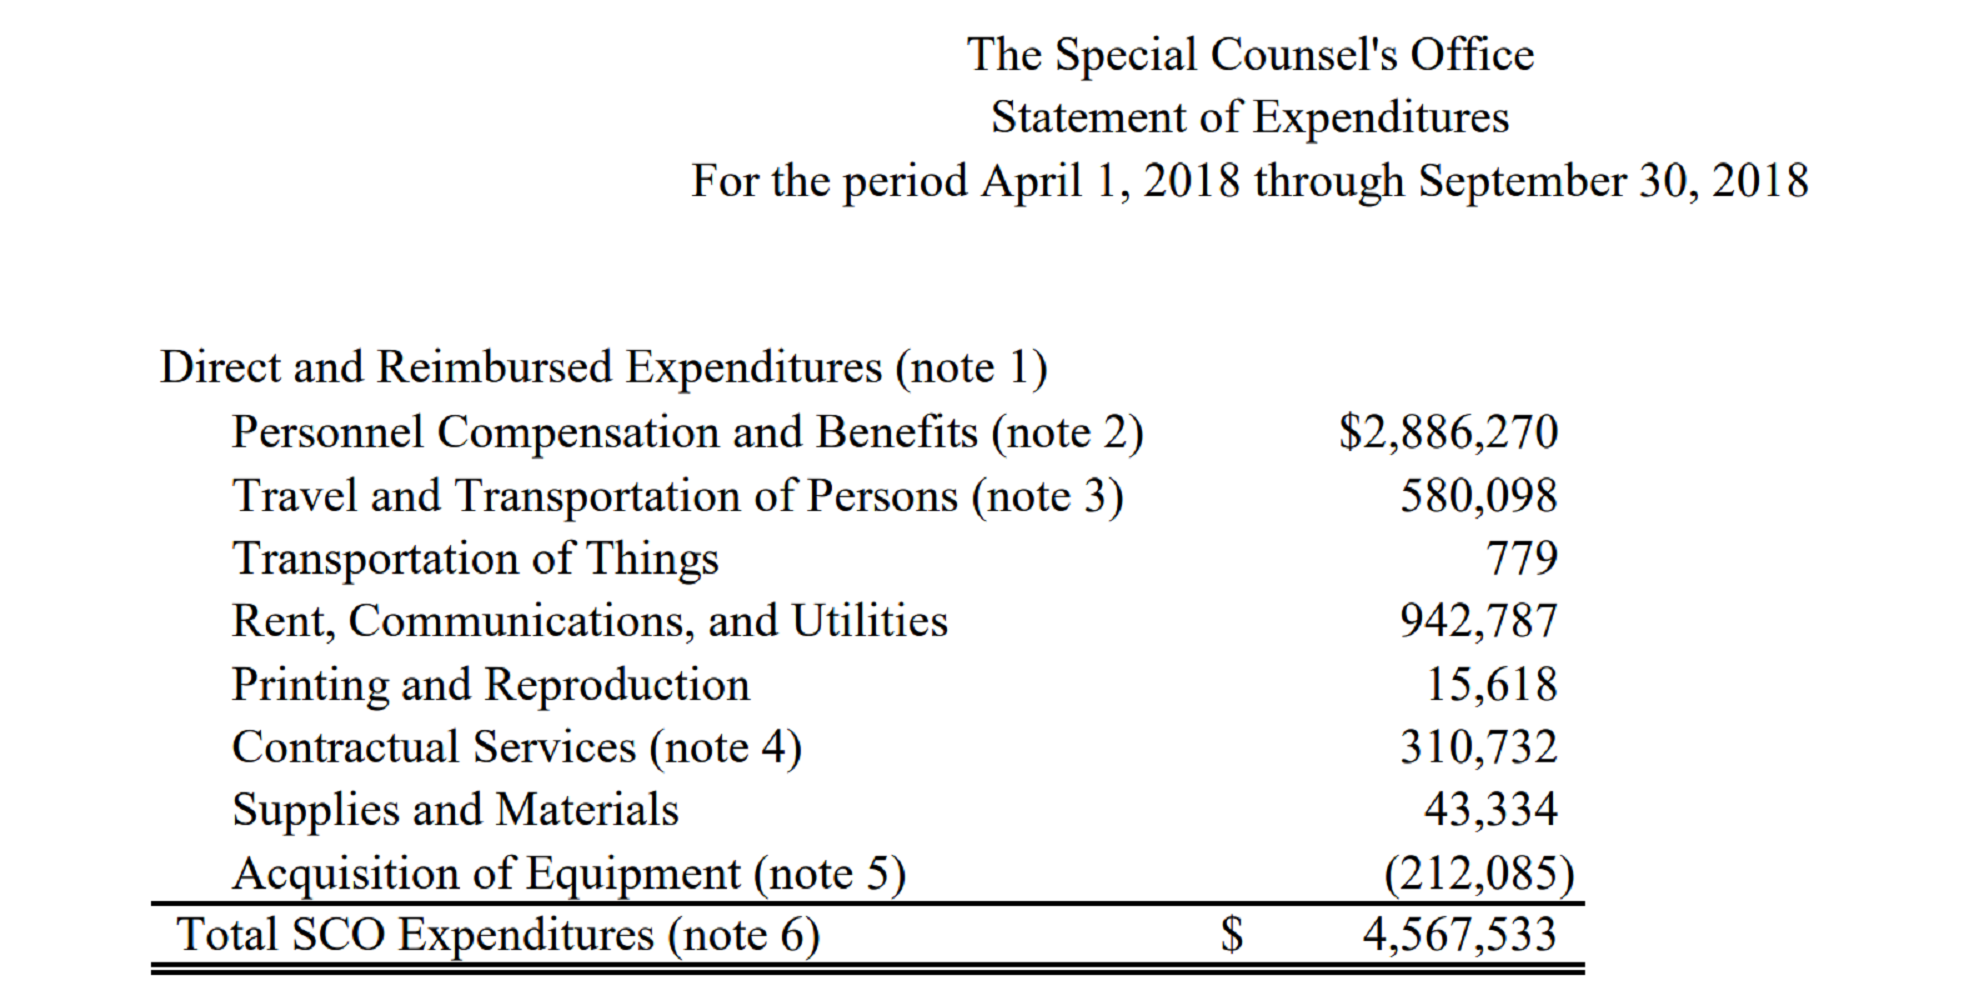 The Special Counsel's Office Statement of Expenditures for the period of April 1, 2018 through September 30, 2018.